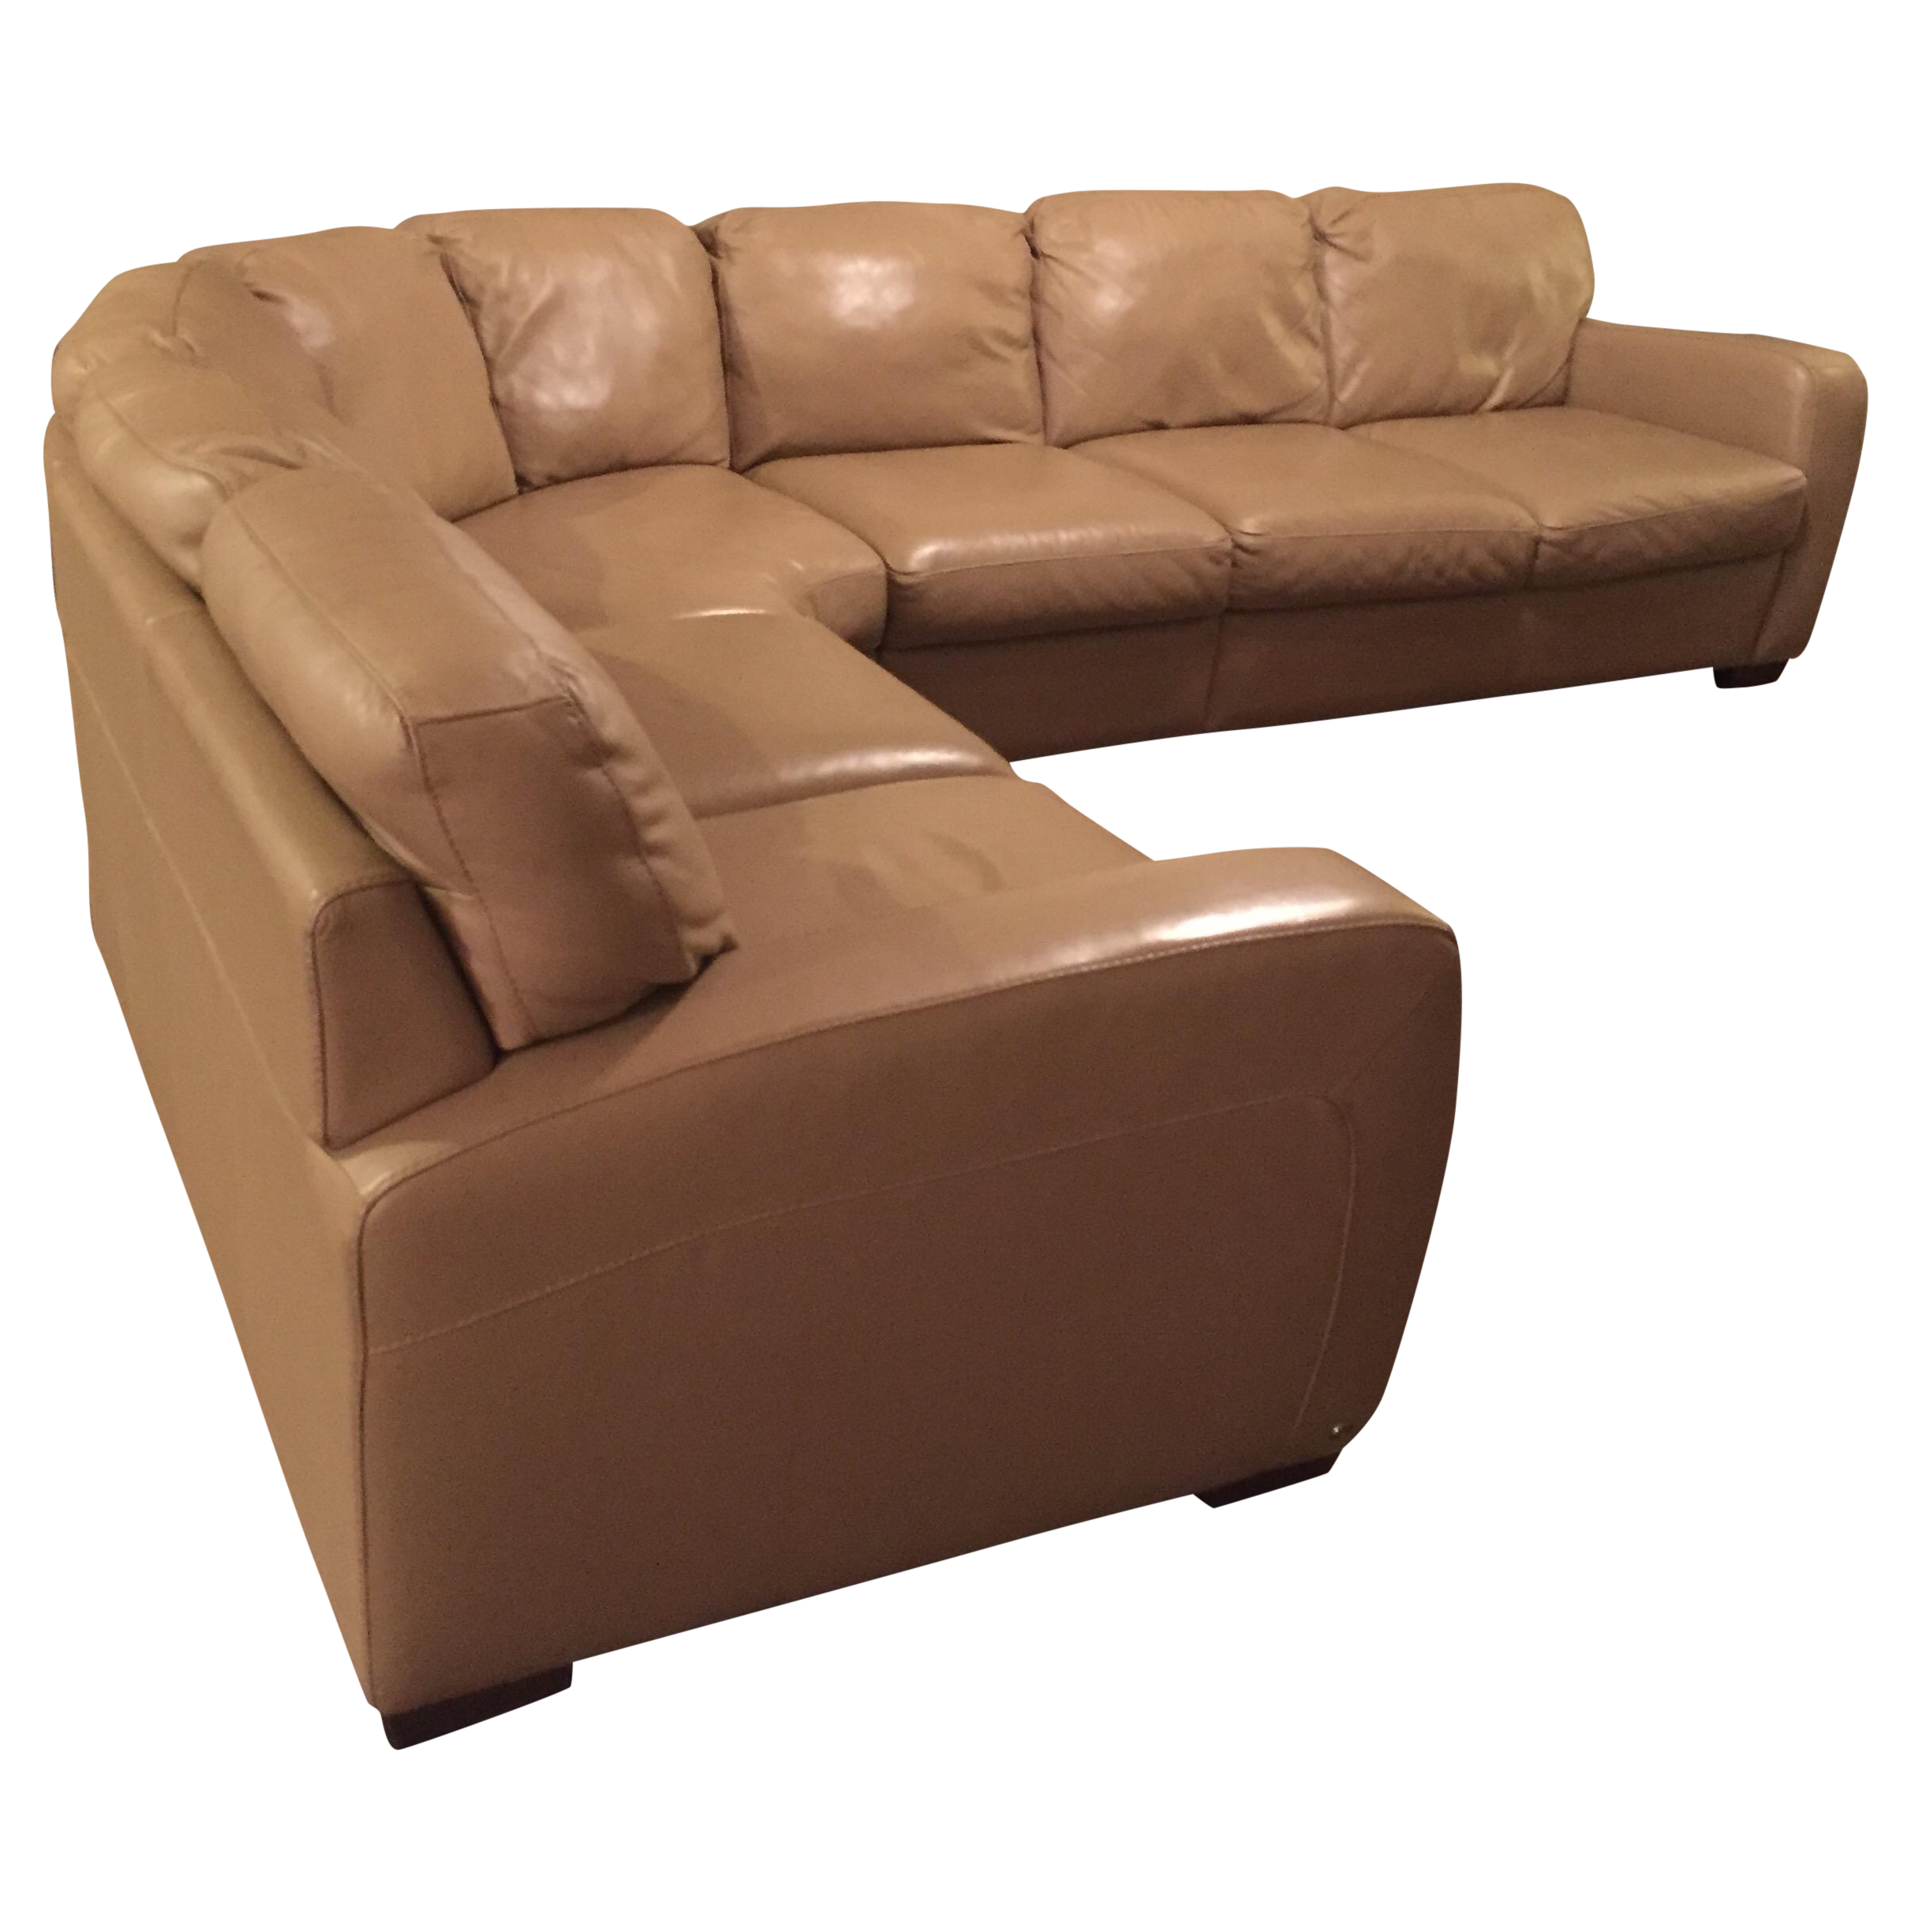 Where To Buy Leather Furniture